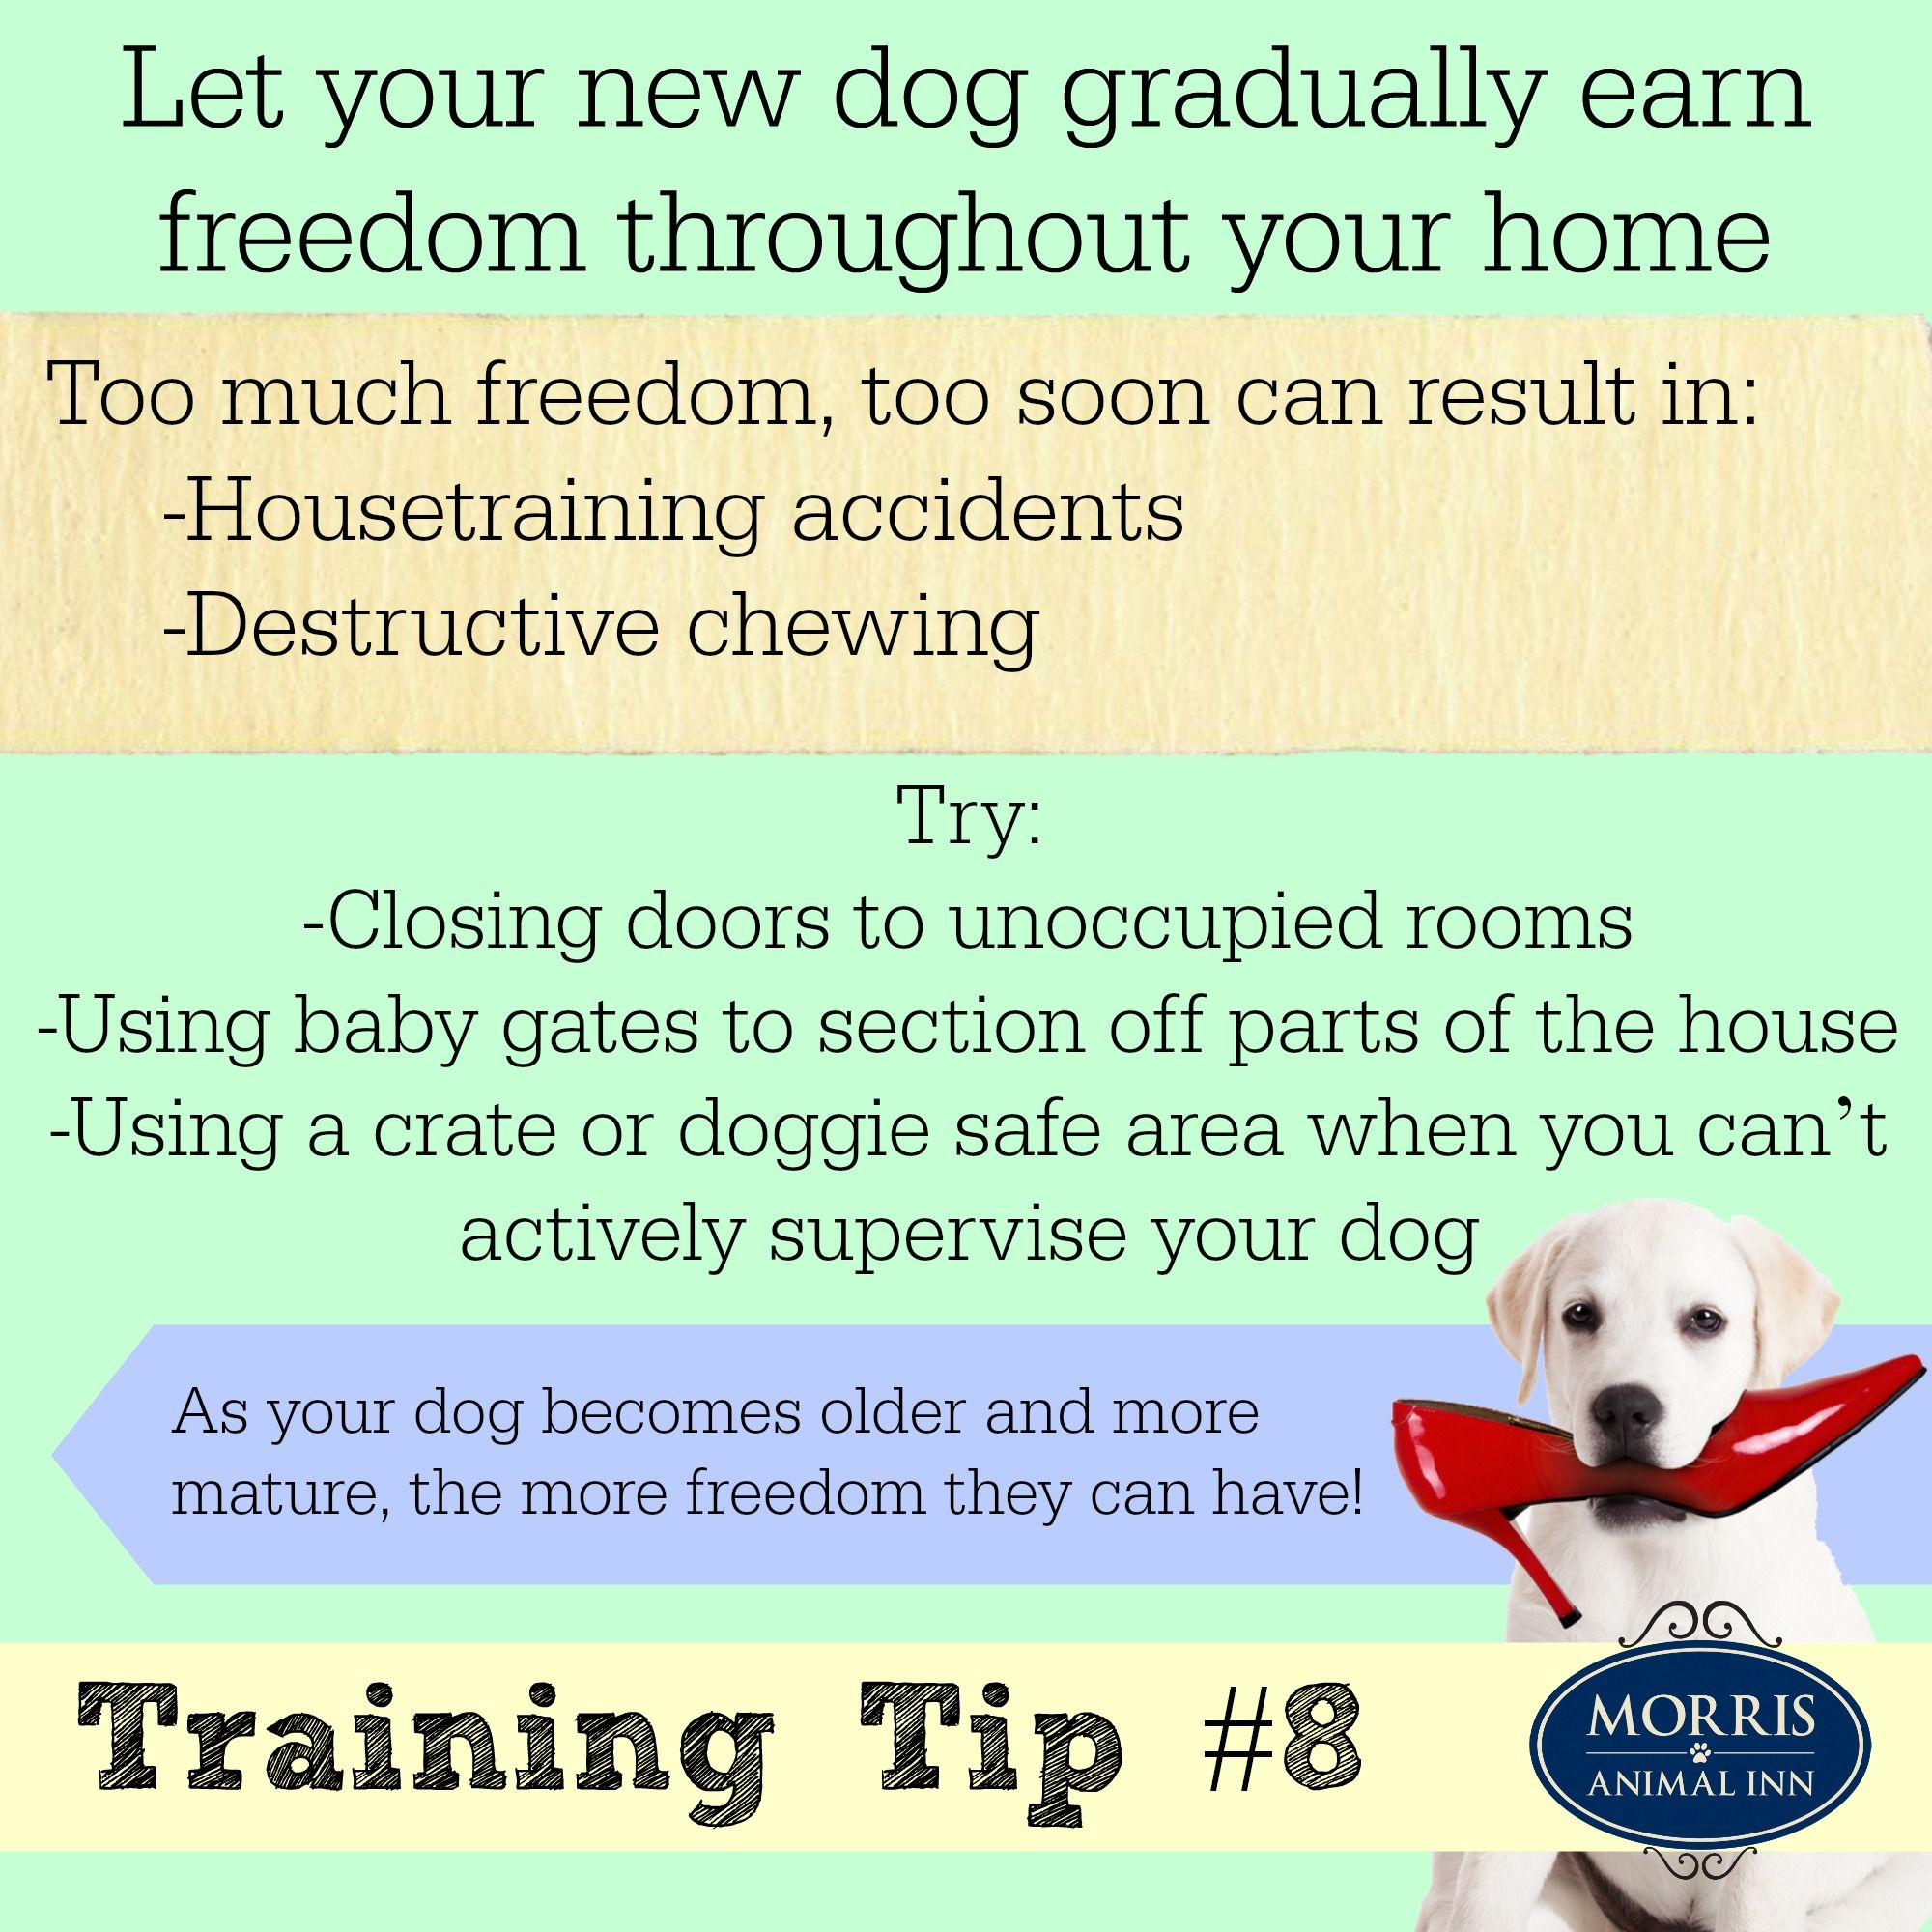 Don T Give Your New Dog Too Much Freedom In Your Home Too Soon